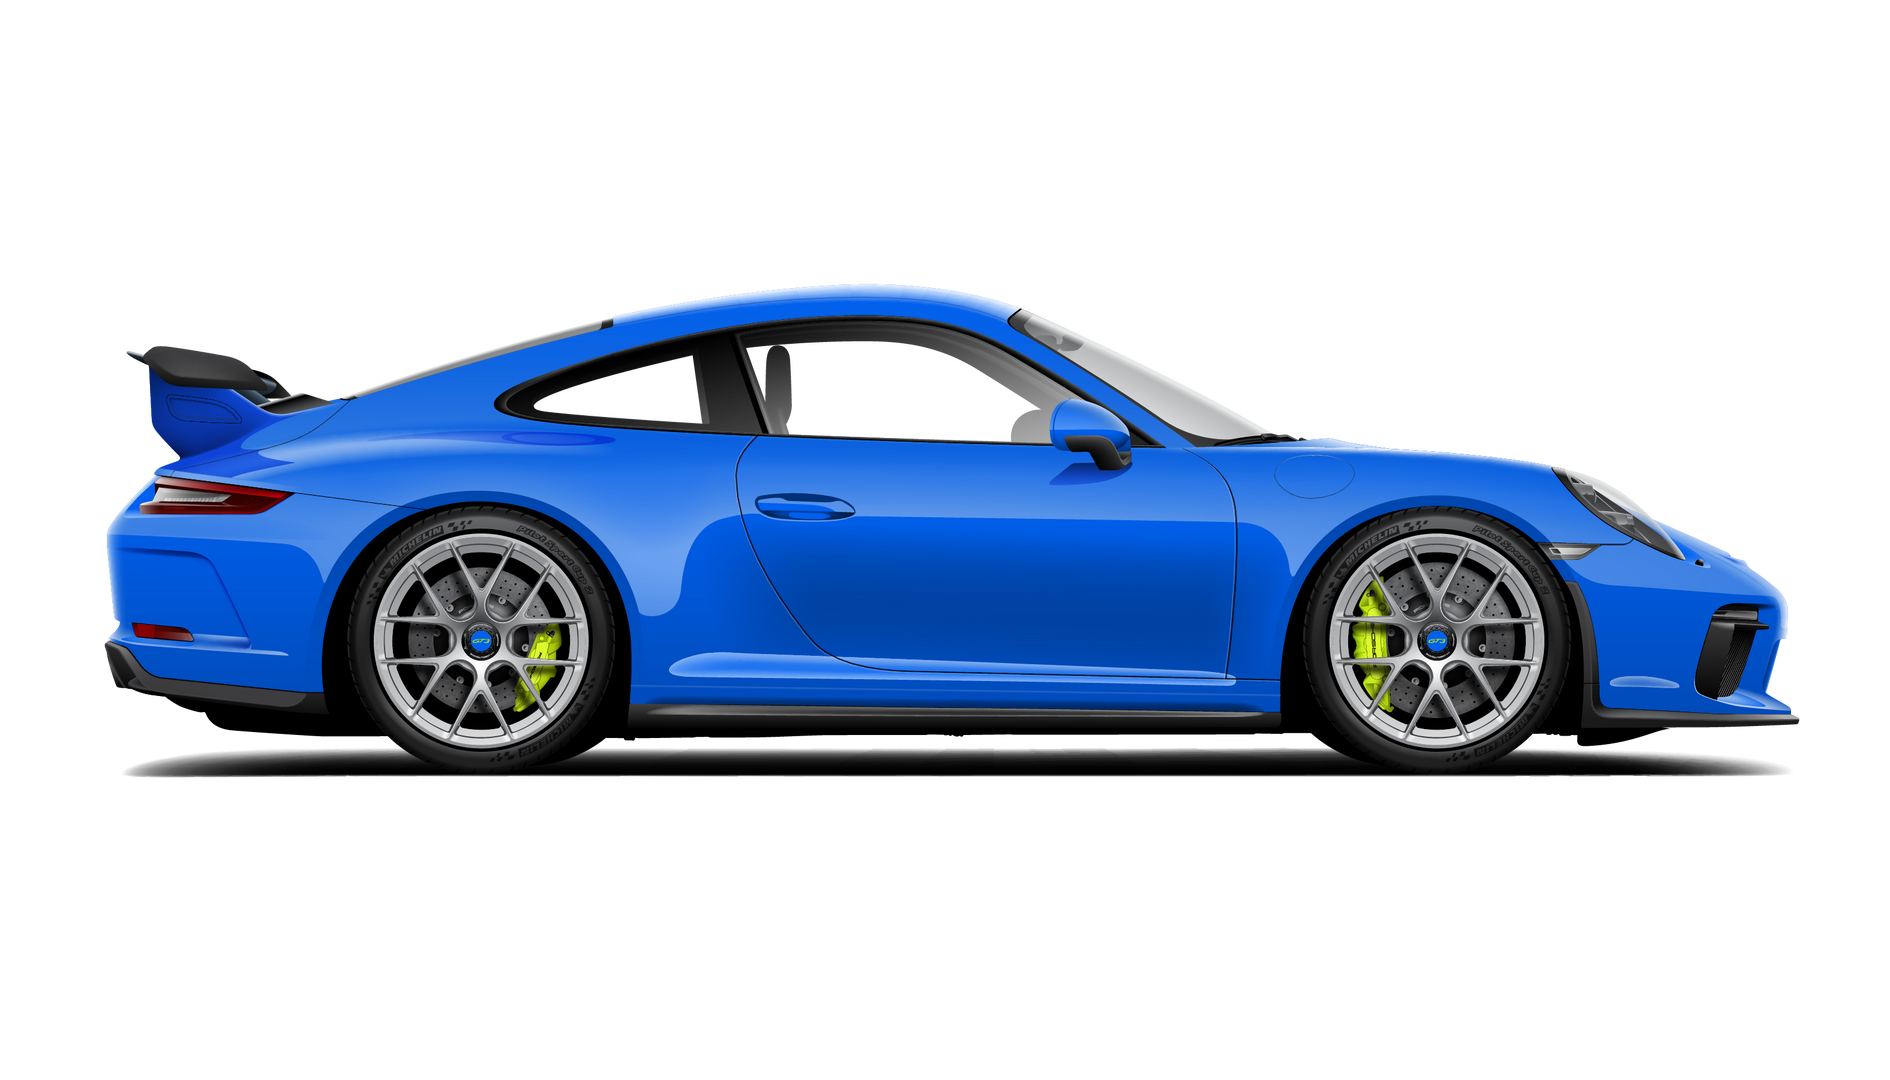 showcase_991gt3-01.png